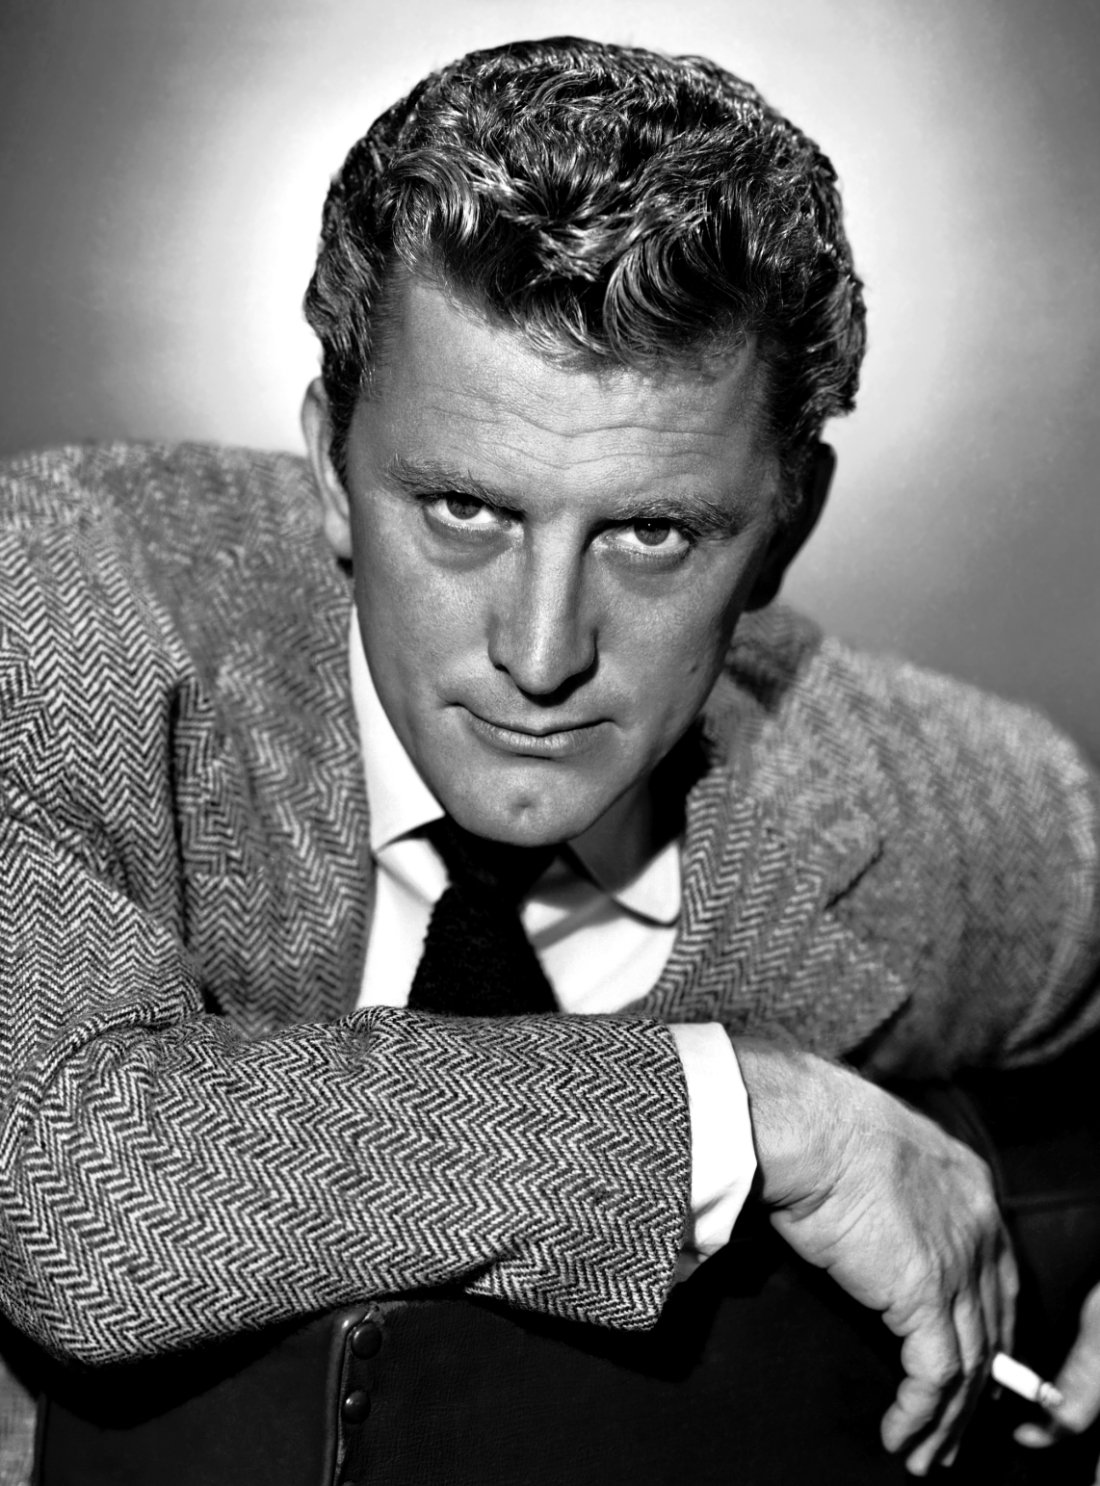 Publicity photo of Kirk Douglas nin the early '50s | Photo: Wikimedia Commons Images